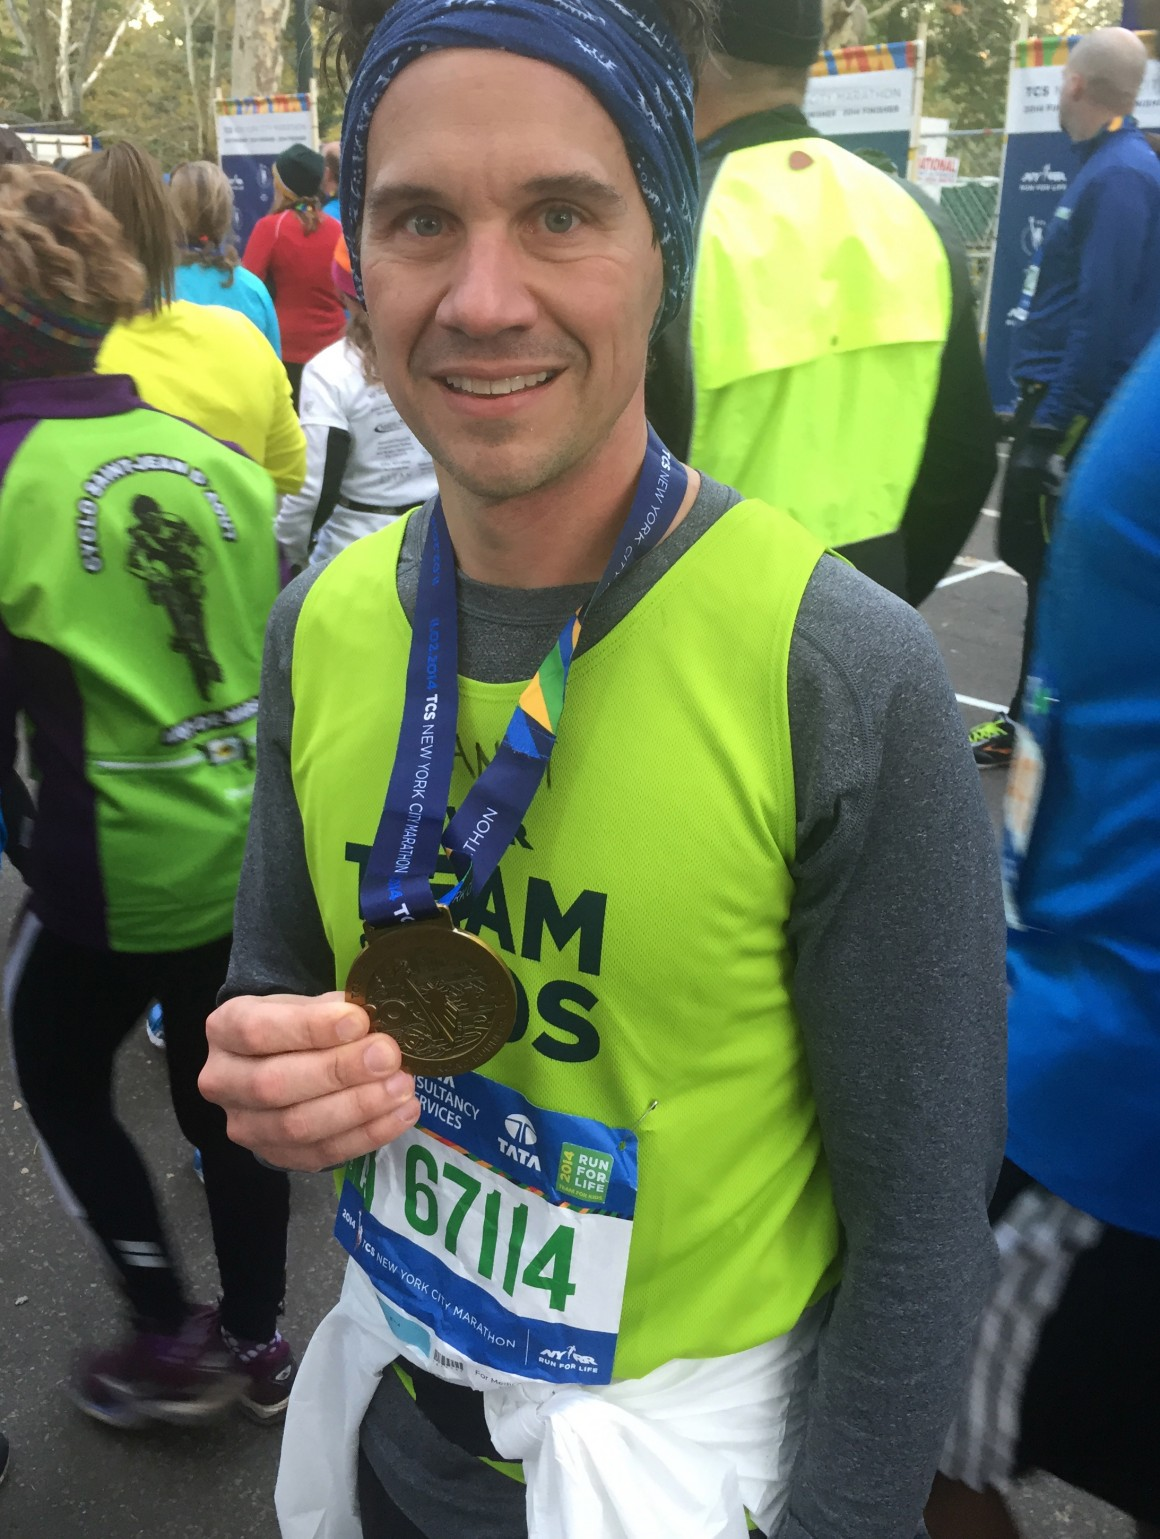 Psychology teacher Danny Carragher with his medal from the 2014 NYC Marathon - his first marathon ever!